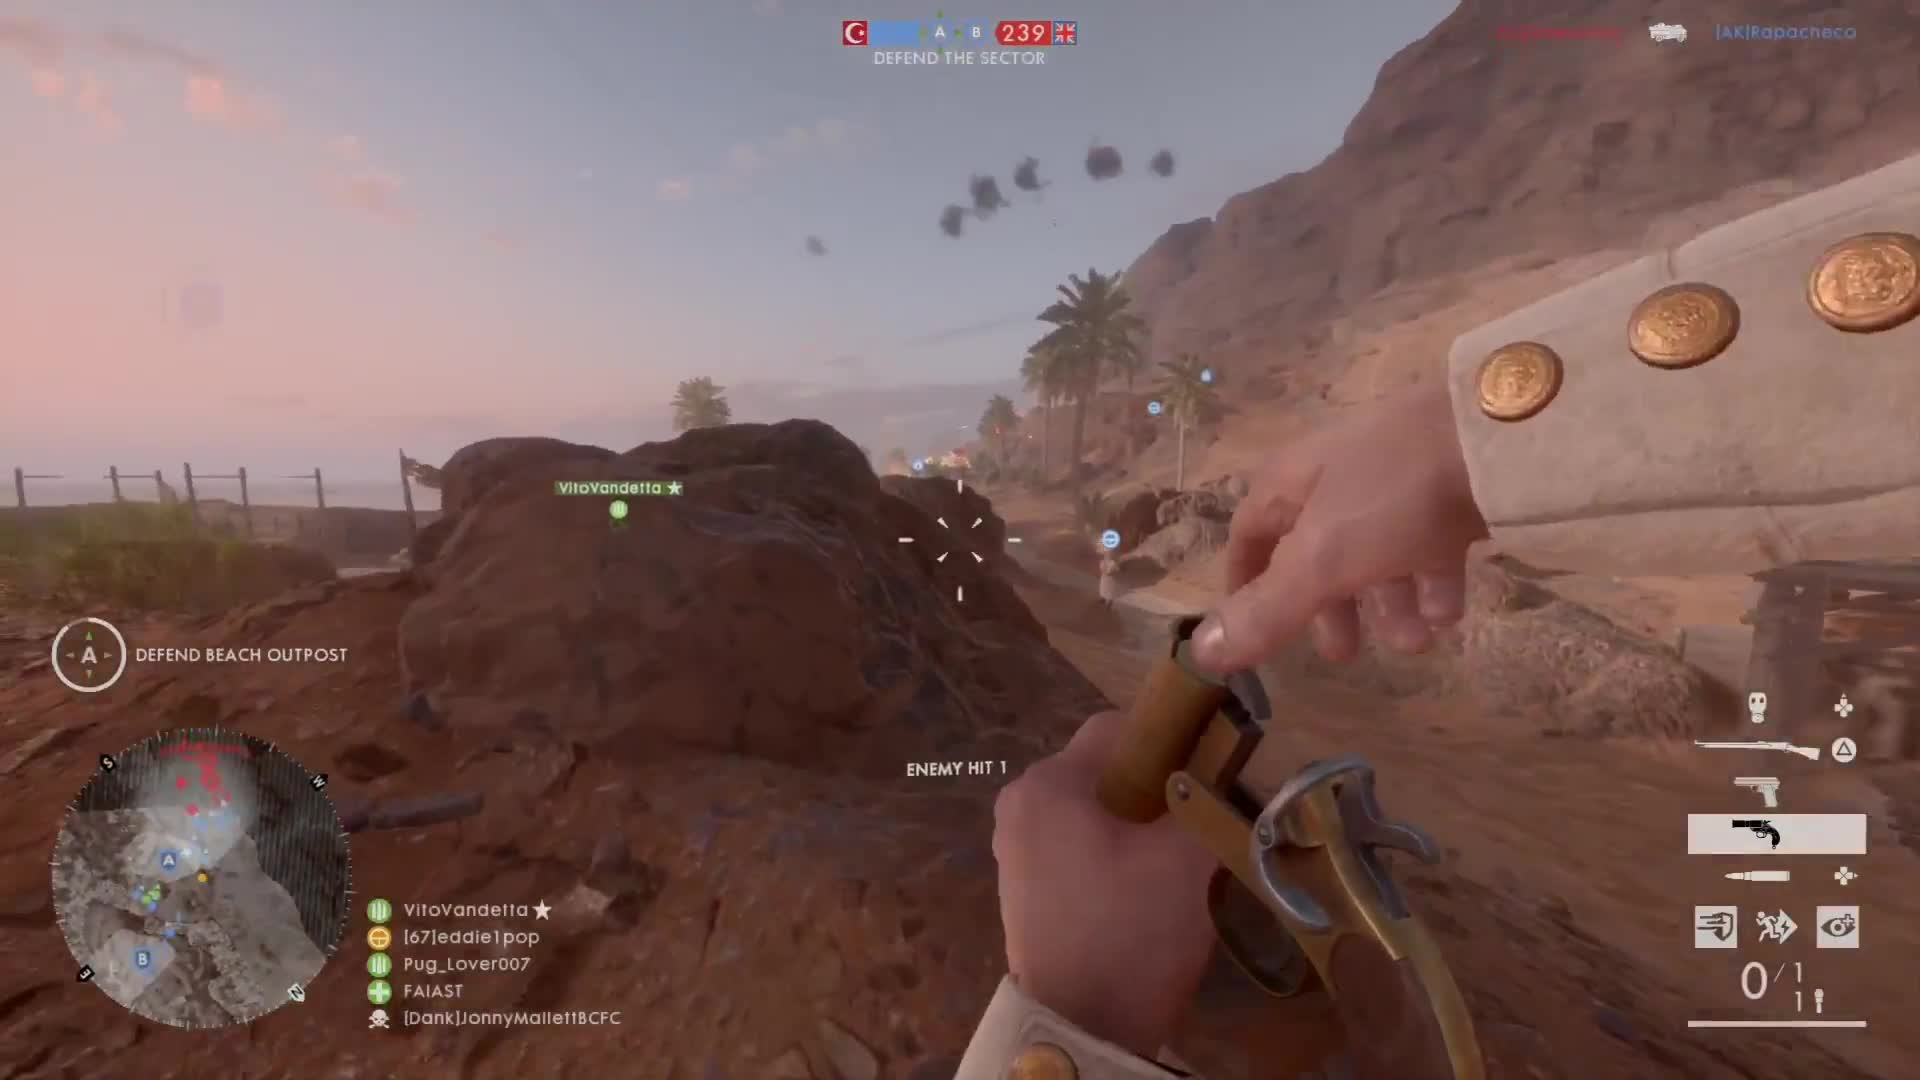 battlefield 1, kills of the week, lebel, pilot headshot, Lebel Love GIFs